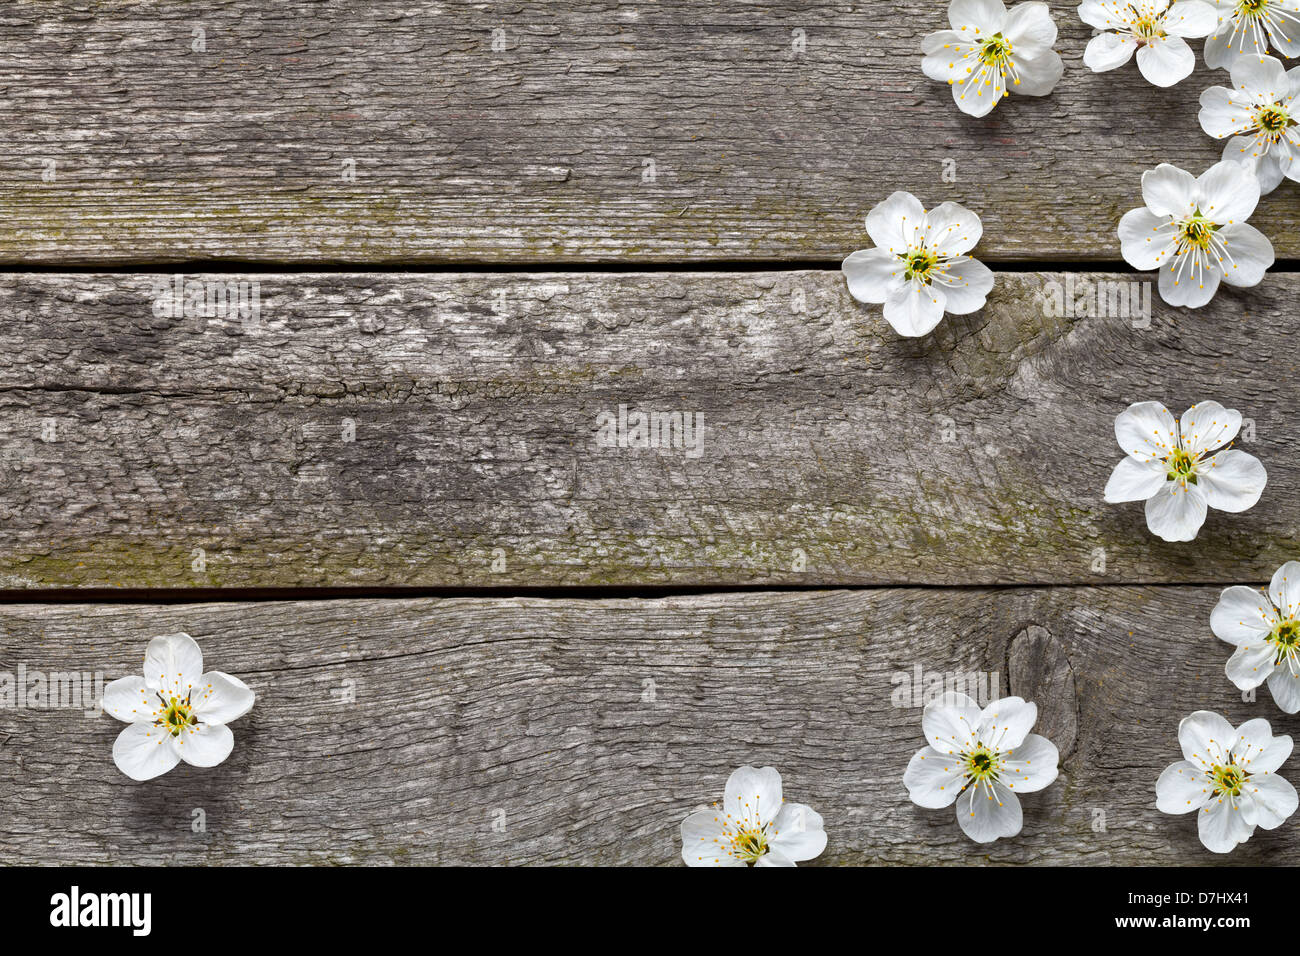 Spring Flowers On Wooden Table Cherry Blossom Top View Stock Photo